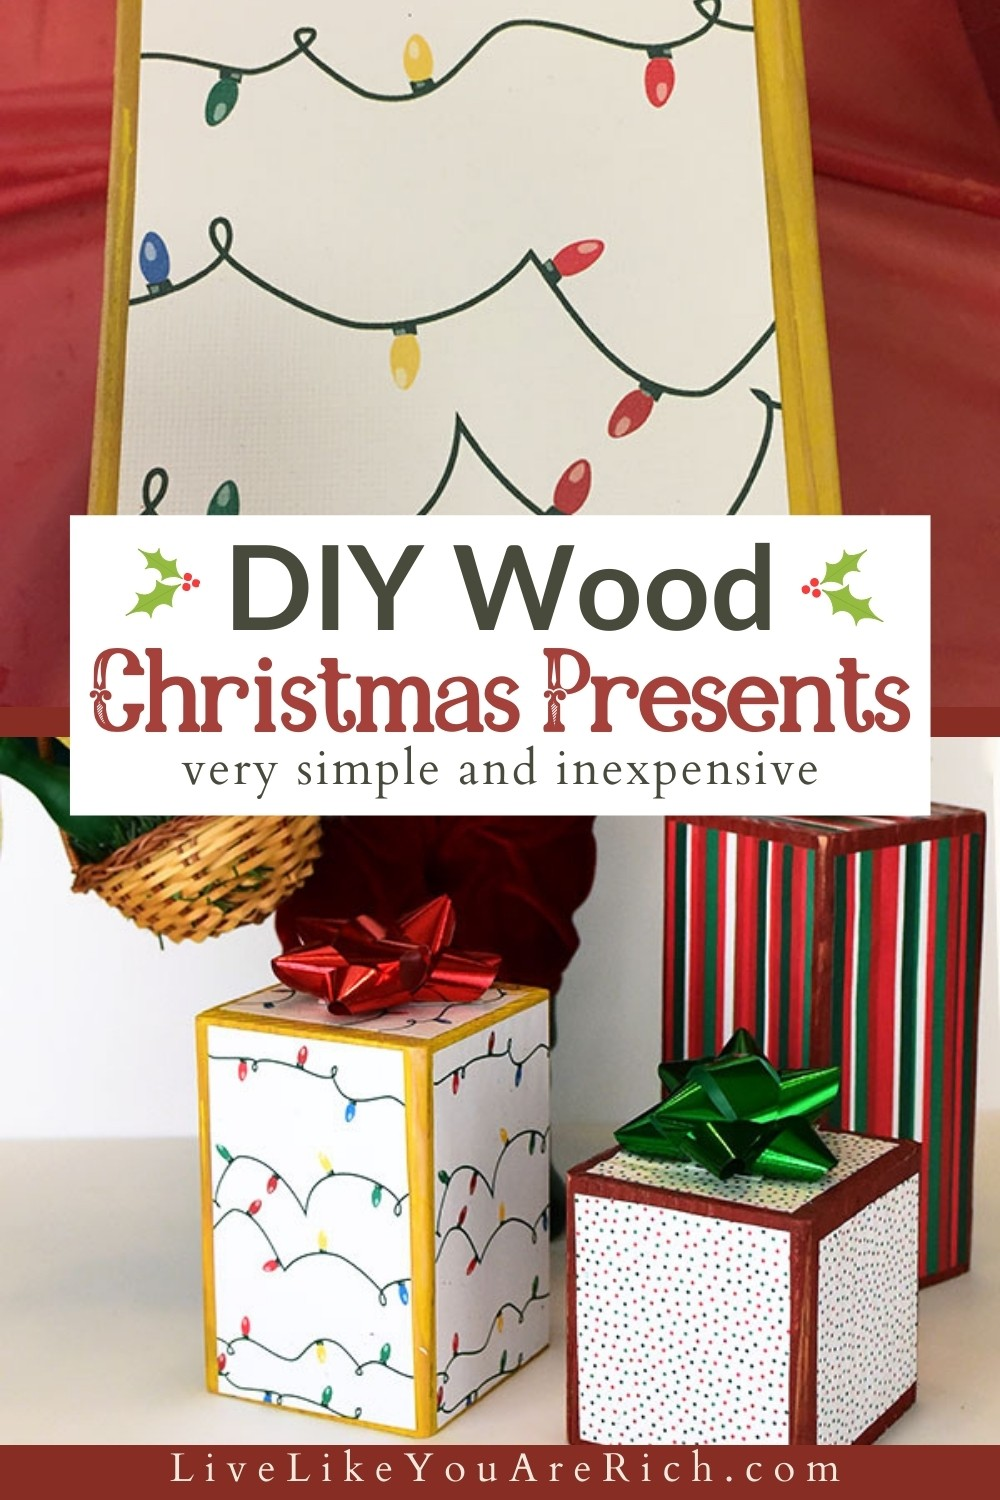 I made these D.I.Y. Wood Christmas Presents. They are very simple and inexpensive. Further, they are durable and will hold up for years—even with little kids in the house. Standing alone they look great. I also really like the wood Christmas presents displayed next to my Santa. #christmas #christmasdecor